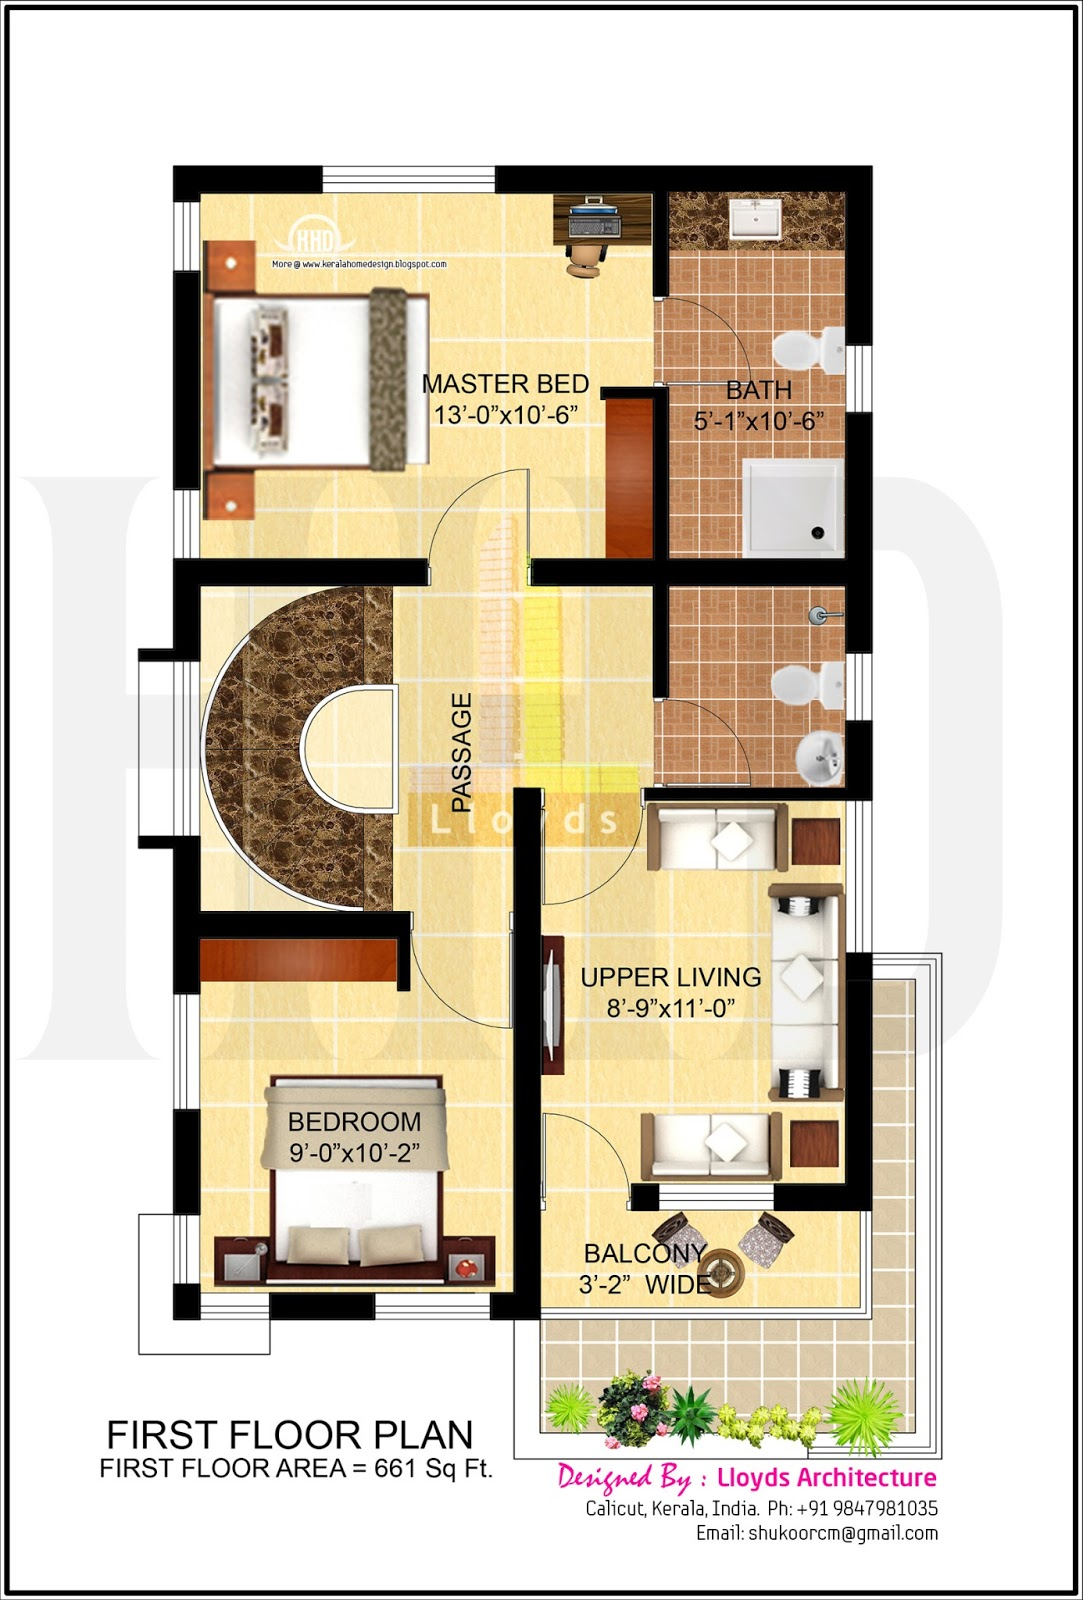 4 bedroom house plan in less than 3 cents kerala home for Kerala 3d home floor plans